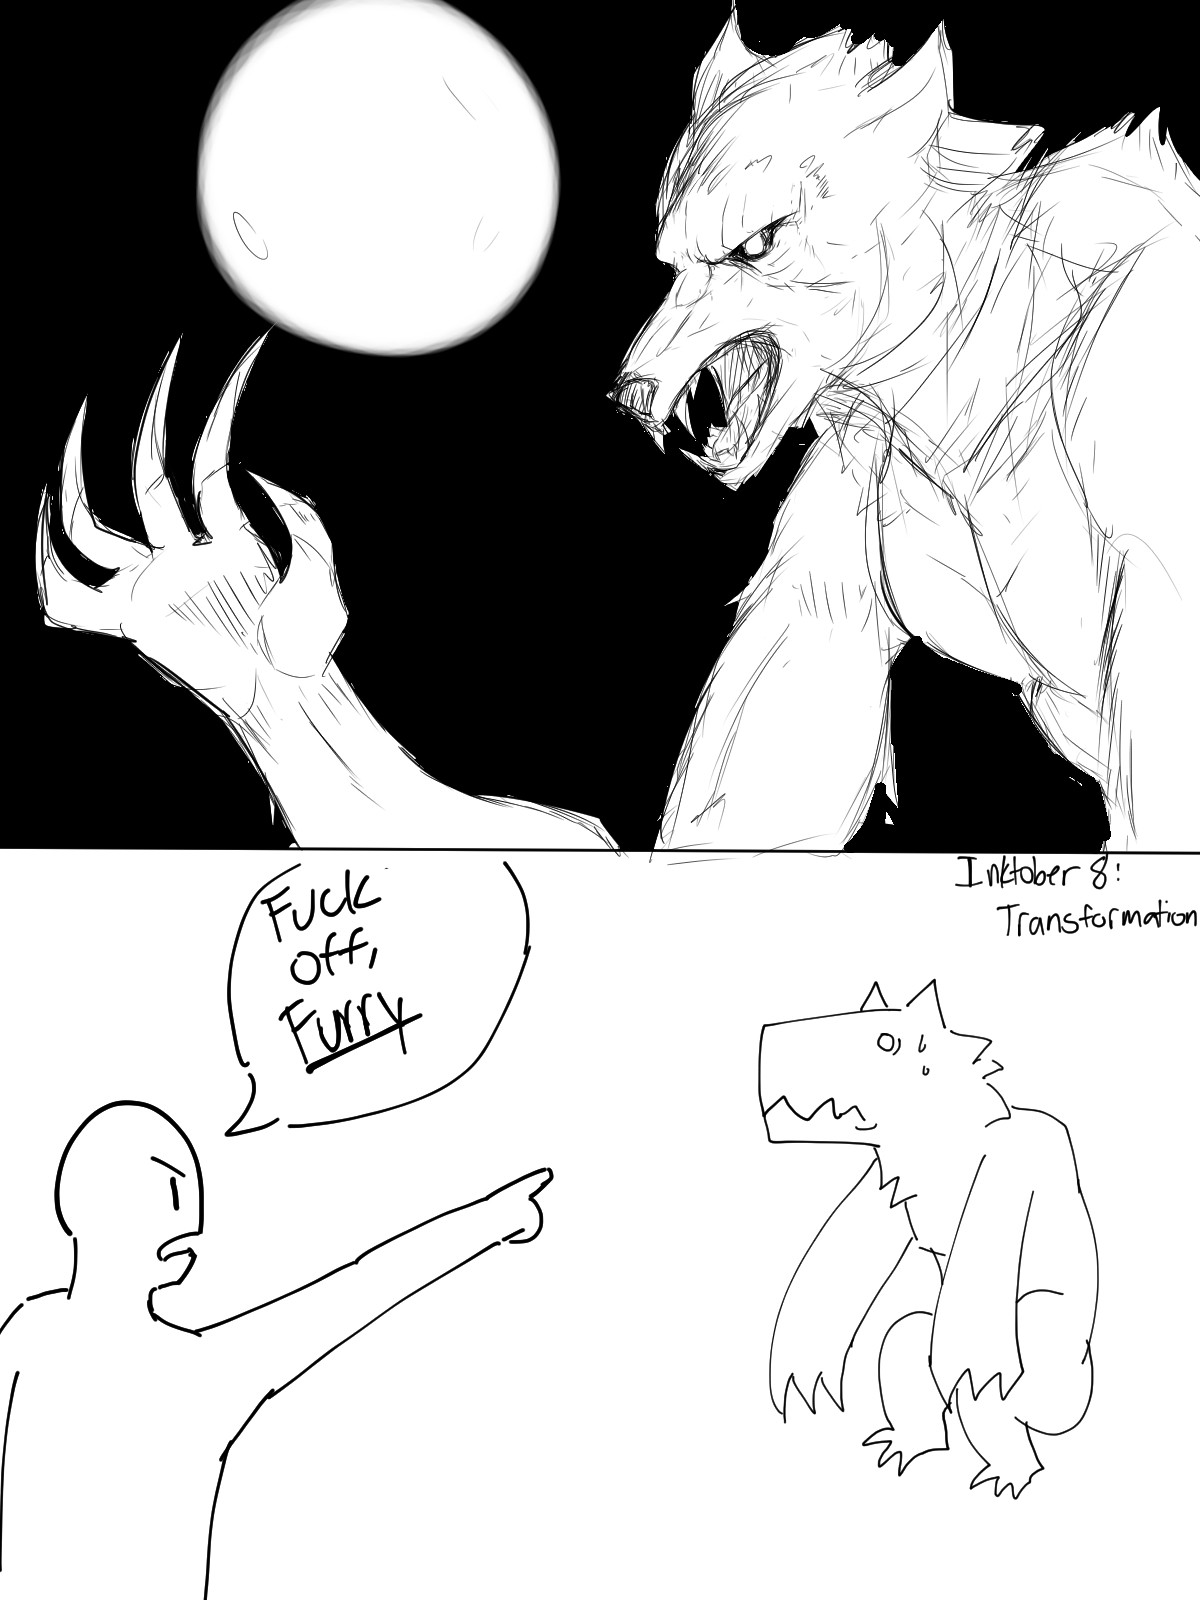 Inktober 8: Werewolves. join list: GBArt (261 subs)Mention History.. Furry get out